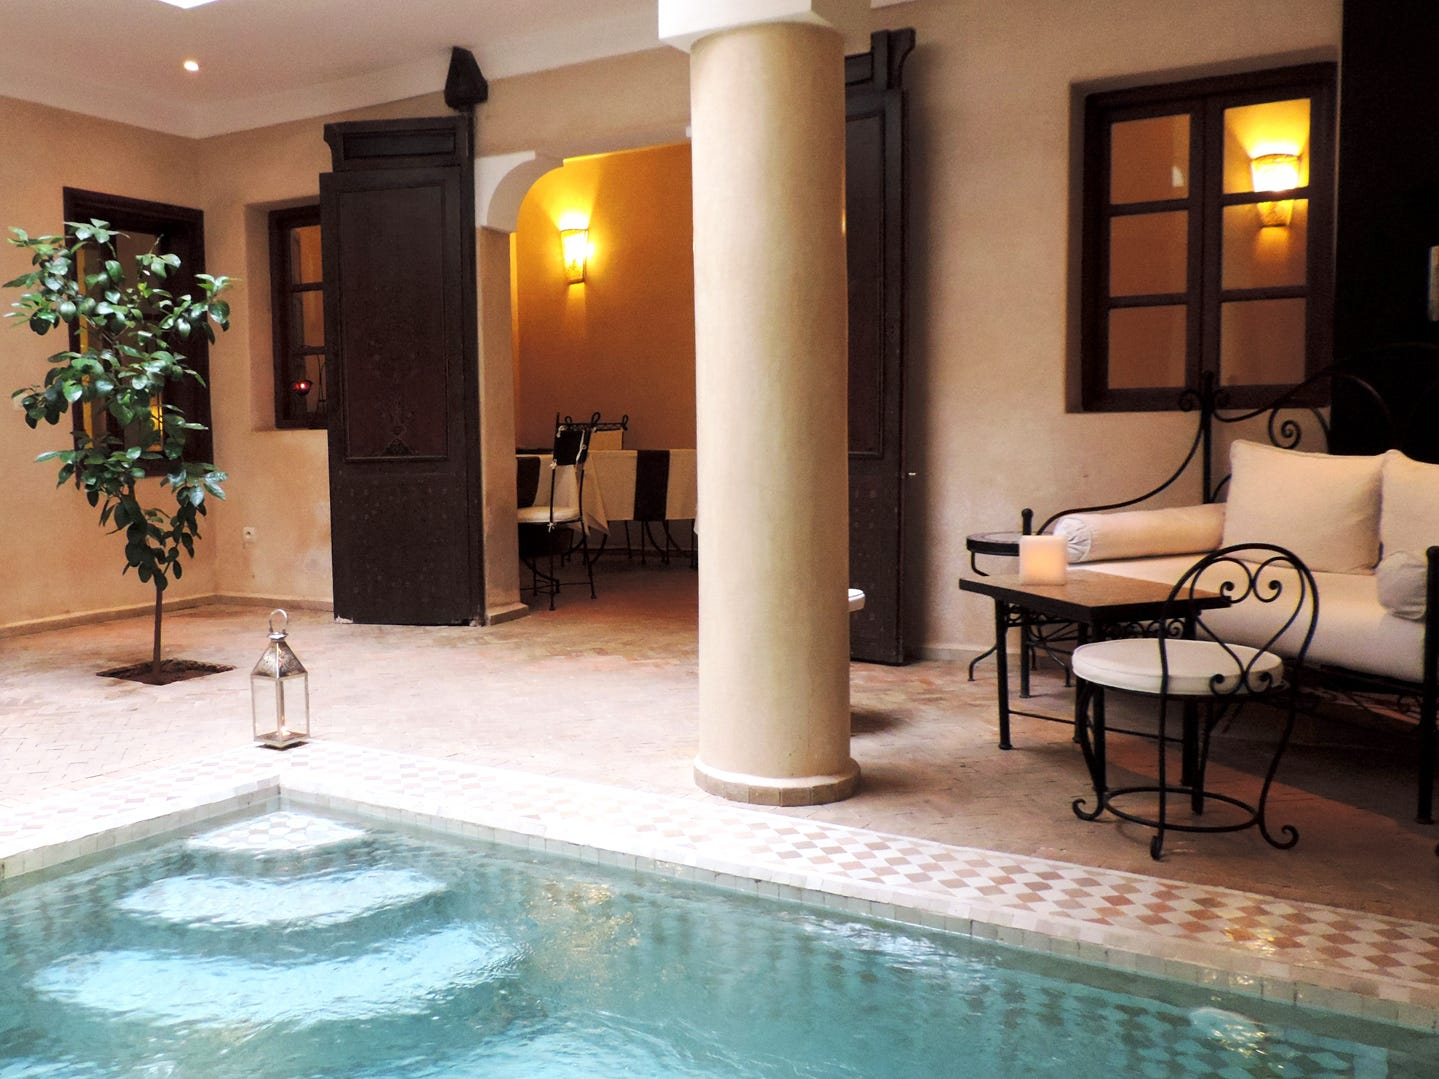 Riad Al Badia, from $131 per night. If you're searching for hotel deals, Morocco is a great bargain destination to consider. One of TripAdvisor's top 10 hotels in the country, Riad Al Badia is a traditional bed-and-breakfast in the heart of Marrakesh. You'll be greeted with a welcome tea and Moroccan pastries, and be given all the information on what to do and what to see in Marrakesh before being left to explore. The concierge can coordinate excursions to the Essaouira coast, the Atlas Mountains, waterfalls and even the Sahara desert. There are guided tours of the Medina, hammams and massages, and camel rides to experience .